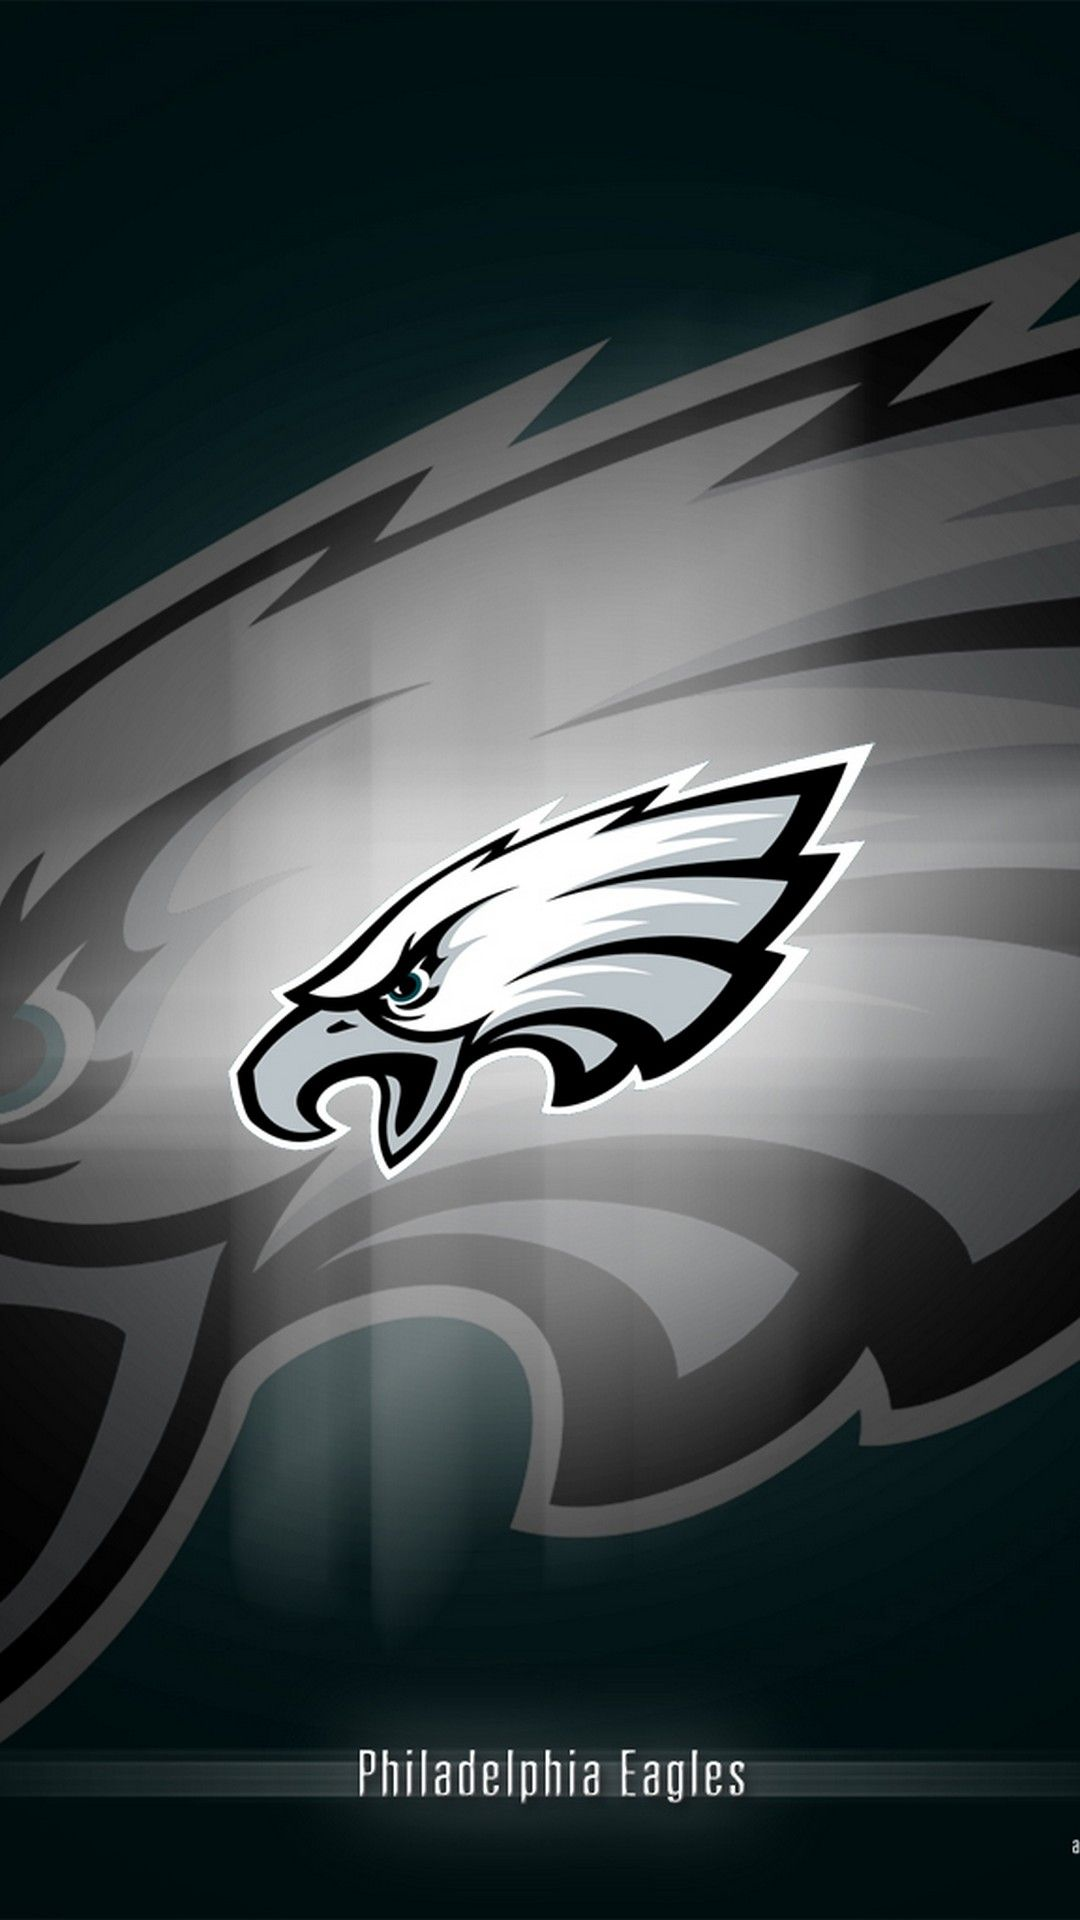 Philadelphia Eagles Iphone Wallpaper Find HD Wallpapers For